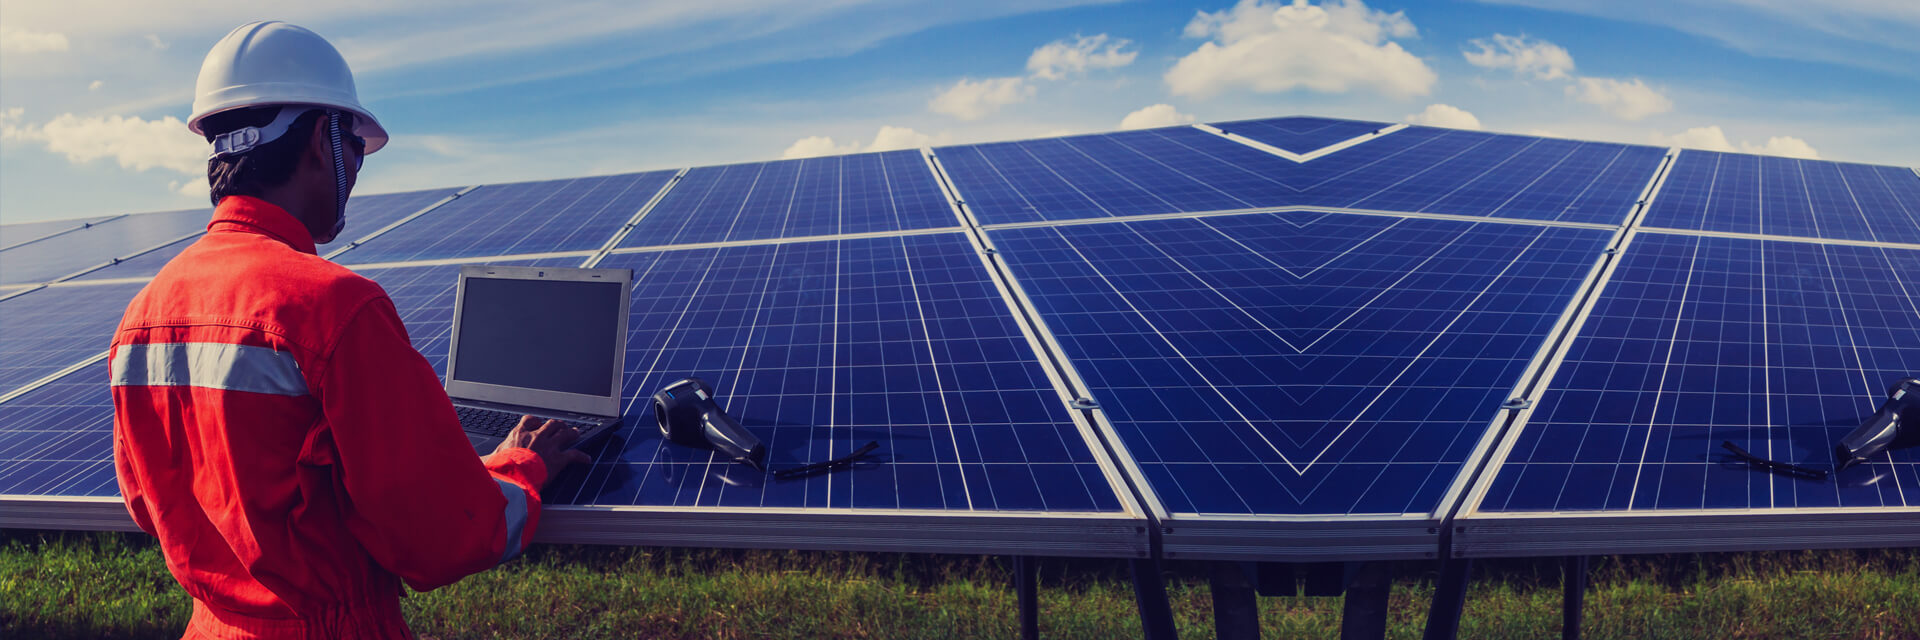 Solar Power Monitoring Equipment by iSolar Brokers